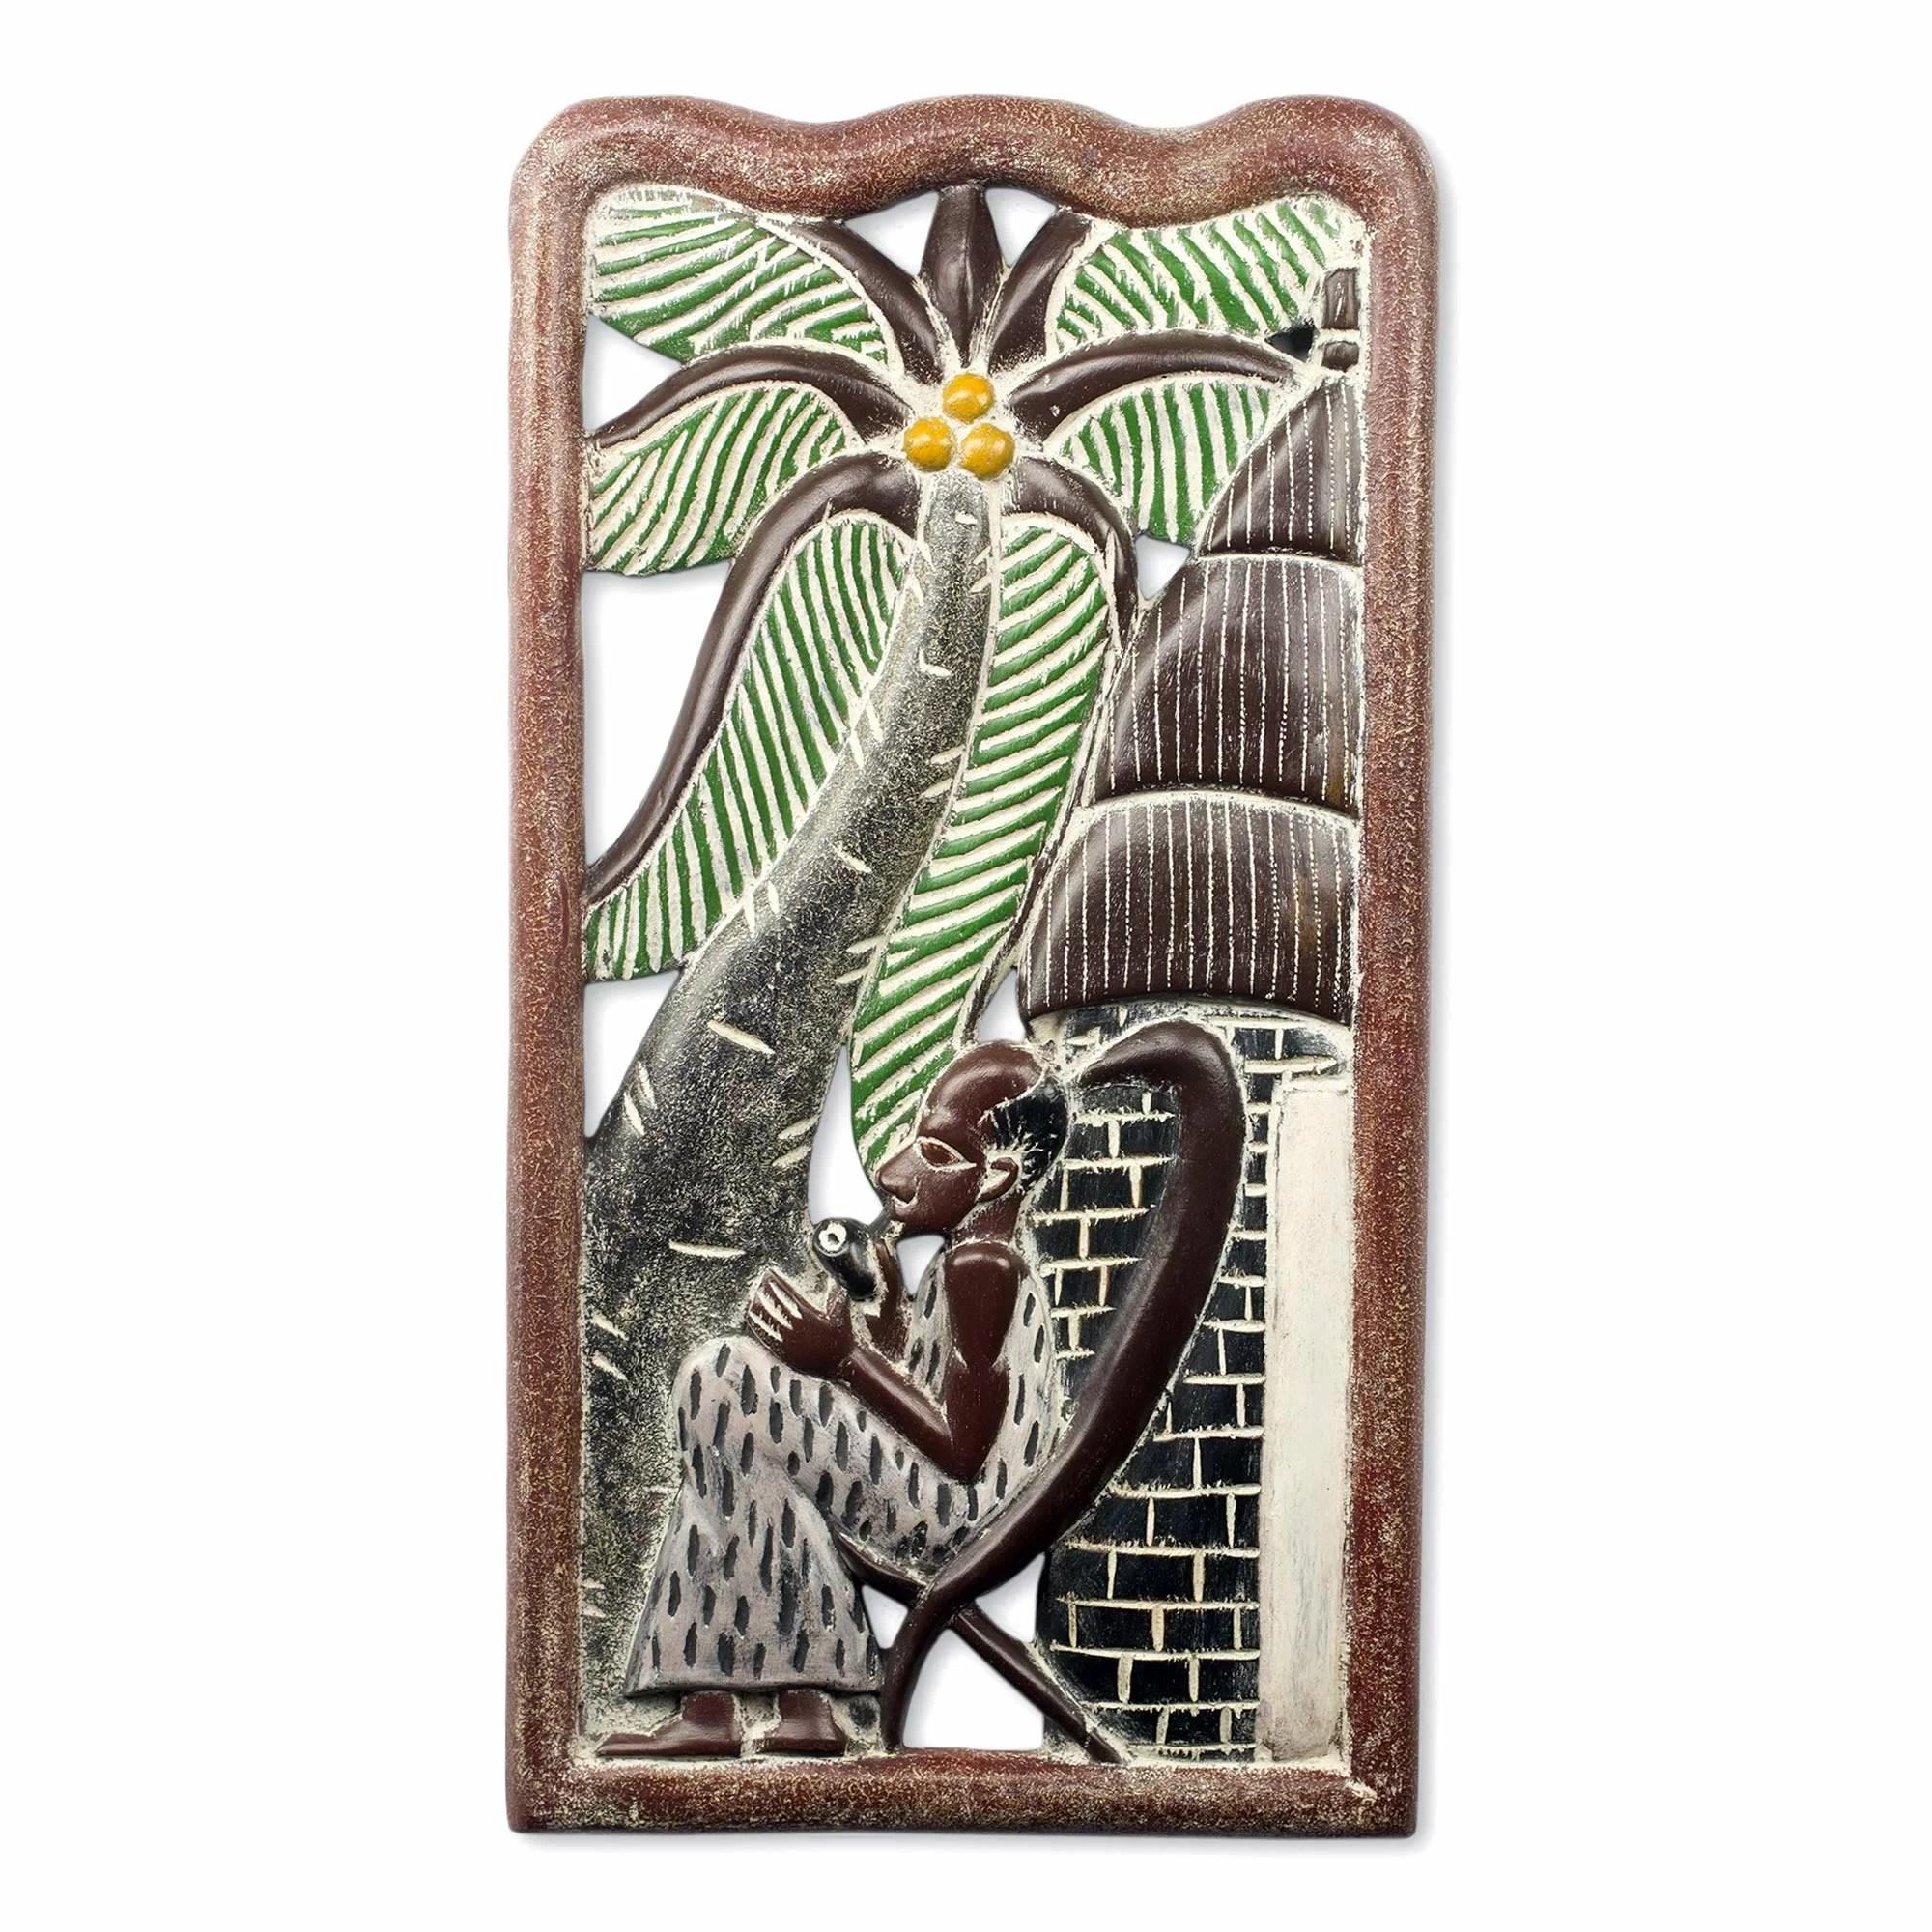 African Wooden Wall Art Novica Rejuvenate Handmade Sculpture Carved From Wood